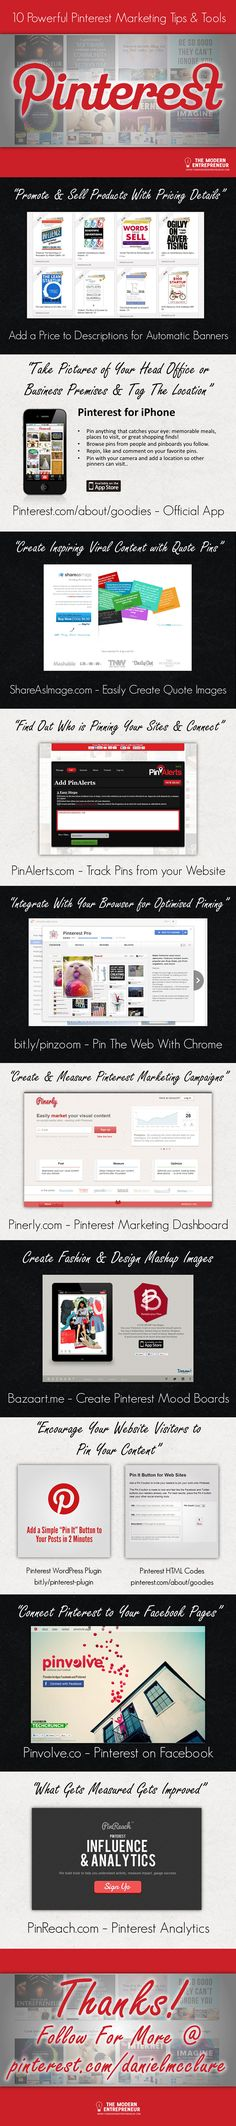 10 Powerful #Pinterest Marketing Tips & Tools #Infographic - Download a full PDF version with working links here - http://themodernentrepreneur.com/10-powerful-pinterest-marketing-tips-tools-infographic/?pd